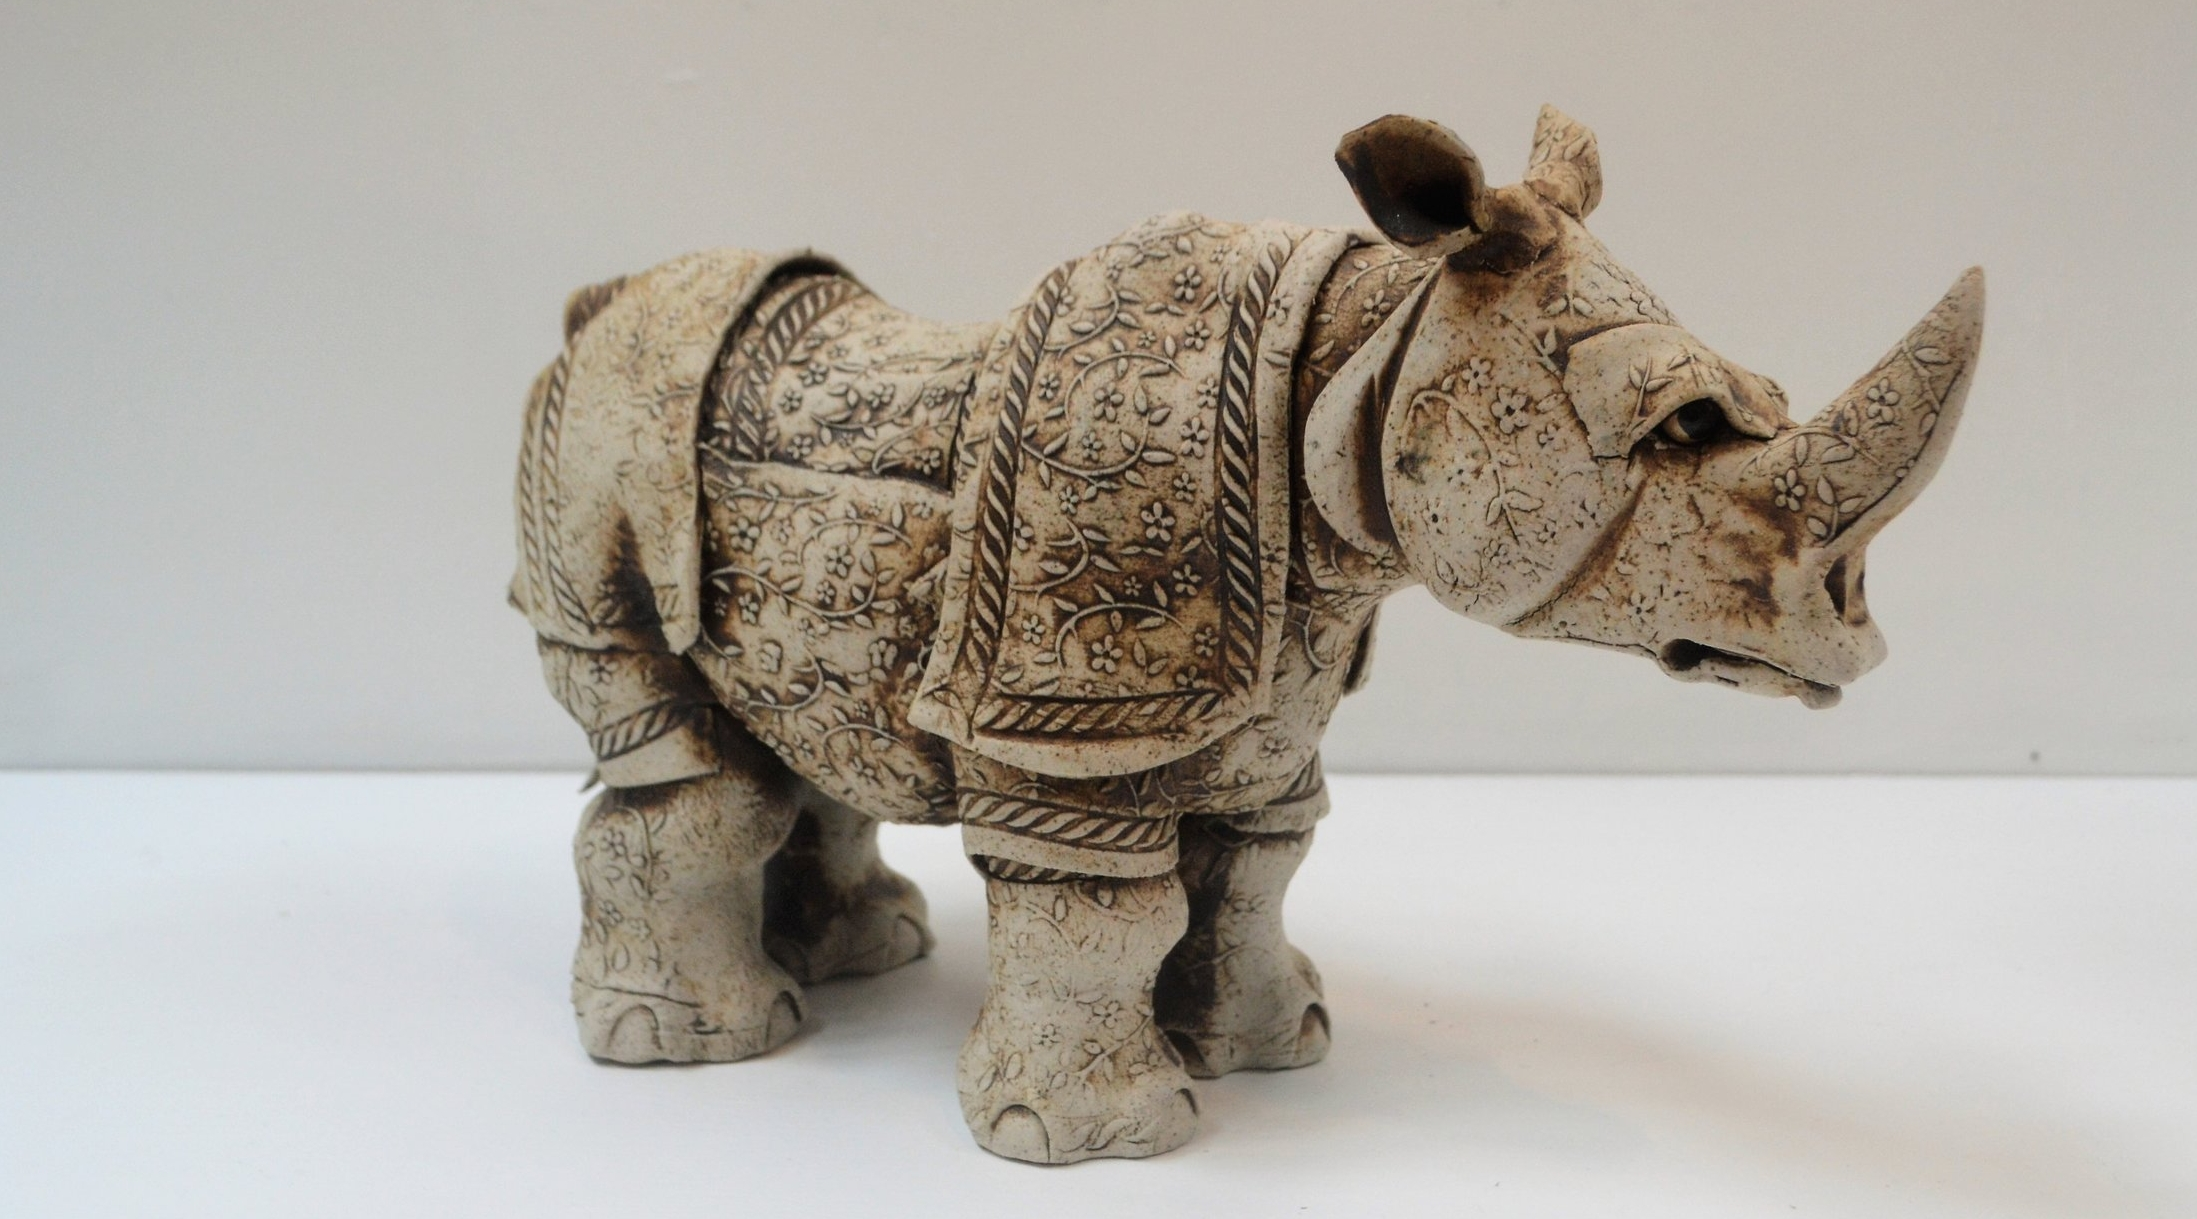 Flower Rhino  Fiona Tunnicliffe, hand formed ceramic sculpture, 200mm height  $350.00